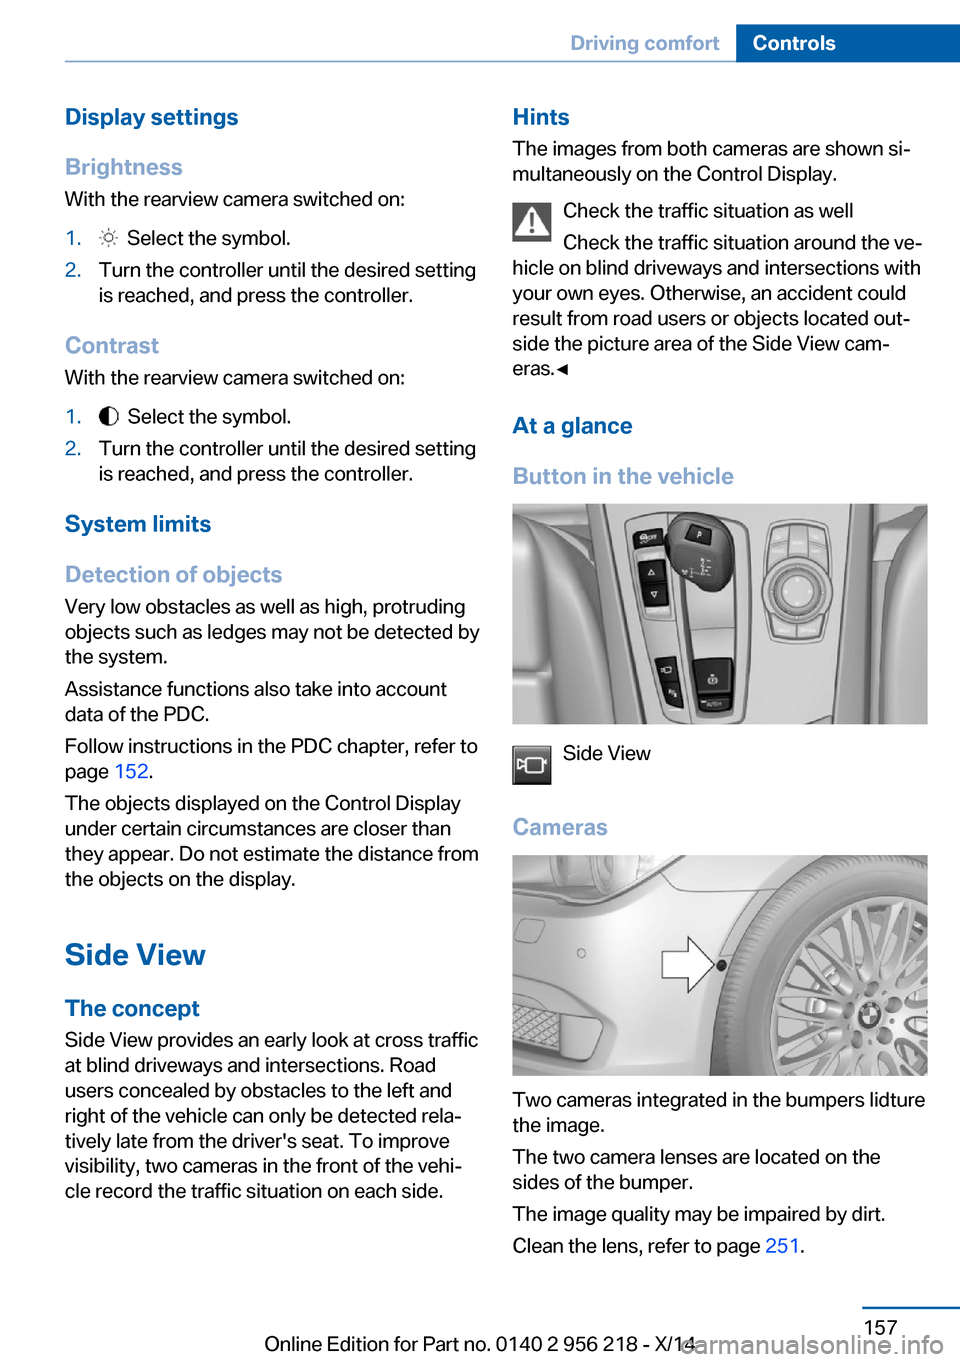 BMW 5 SERIES 2014 F10 Owner s Manual 273 Pages Page 170